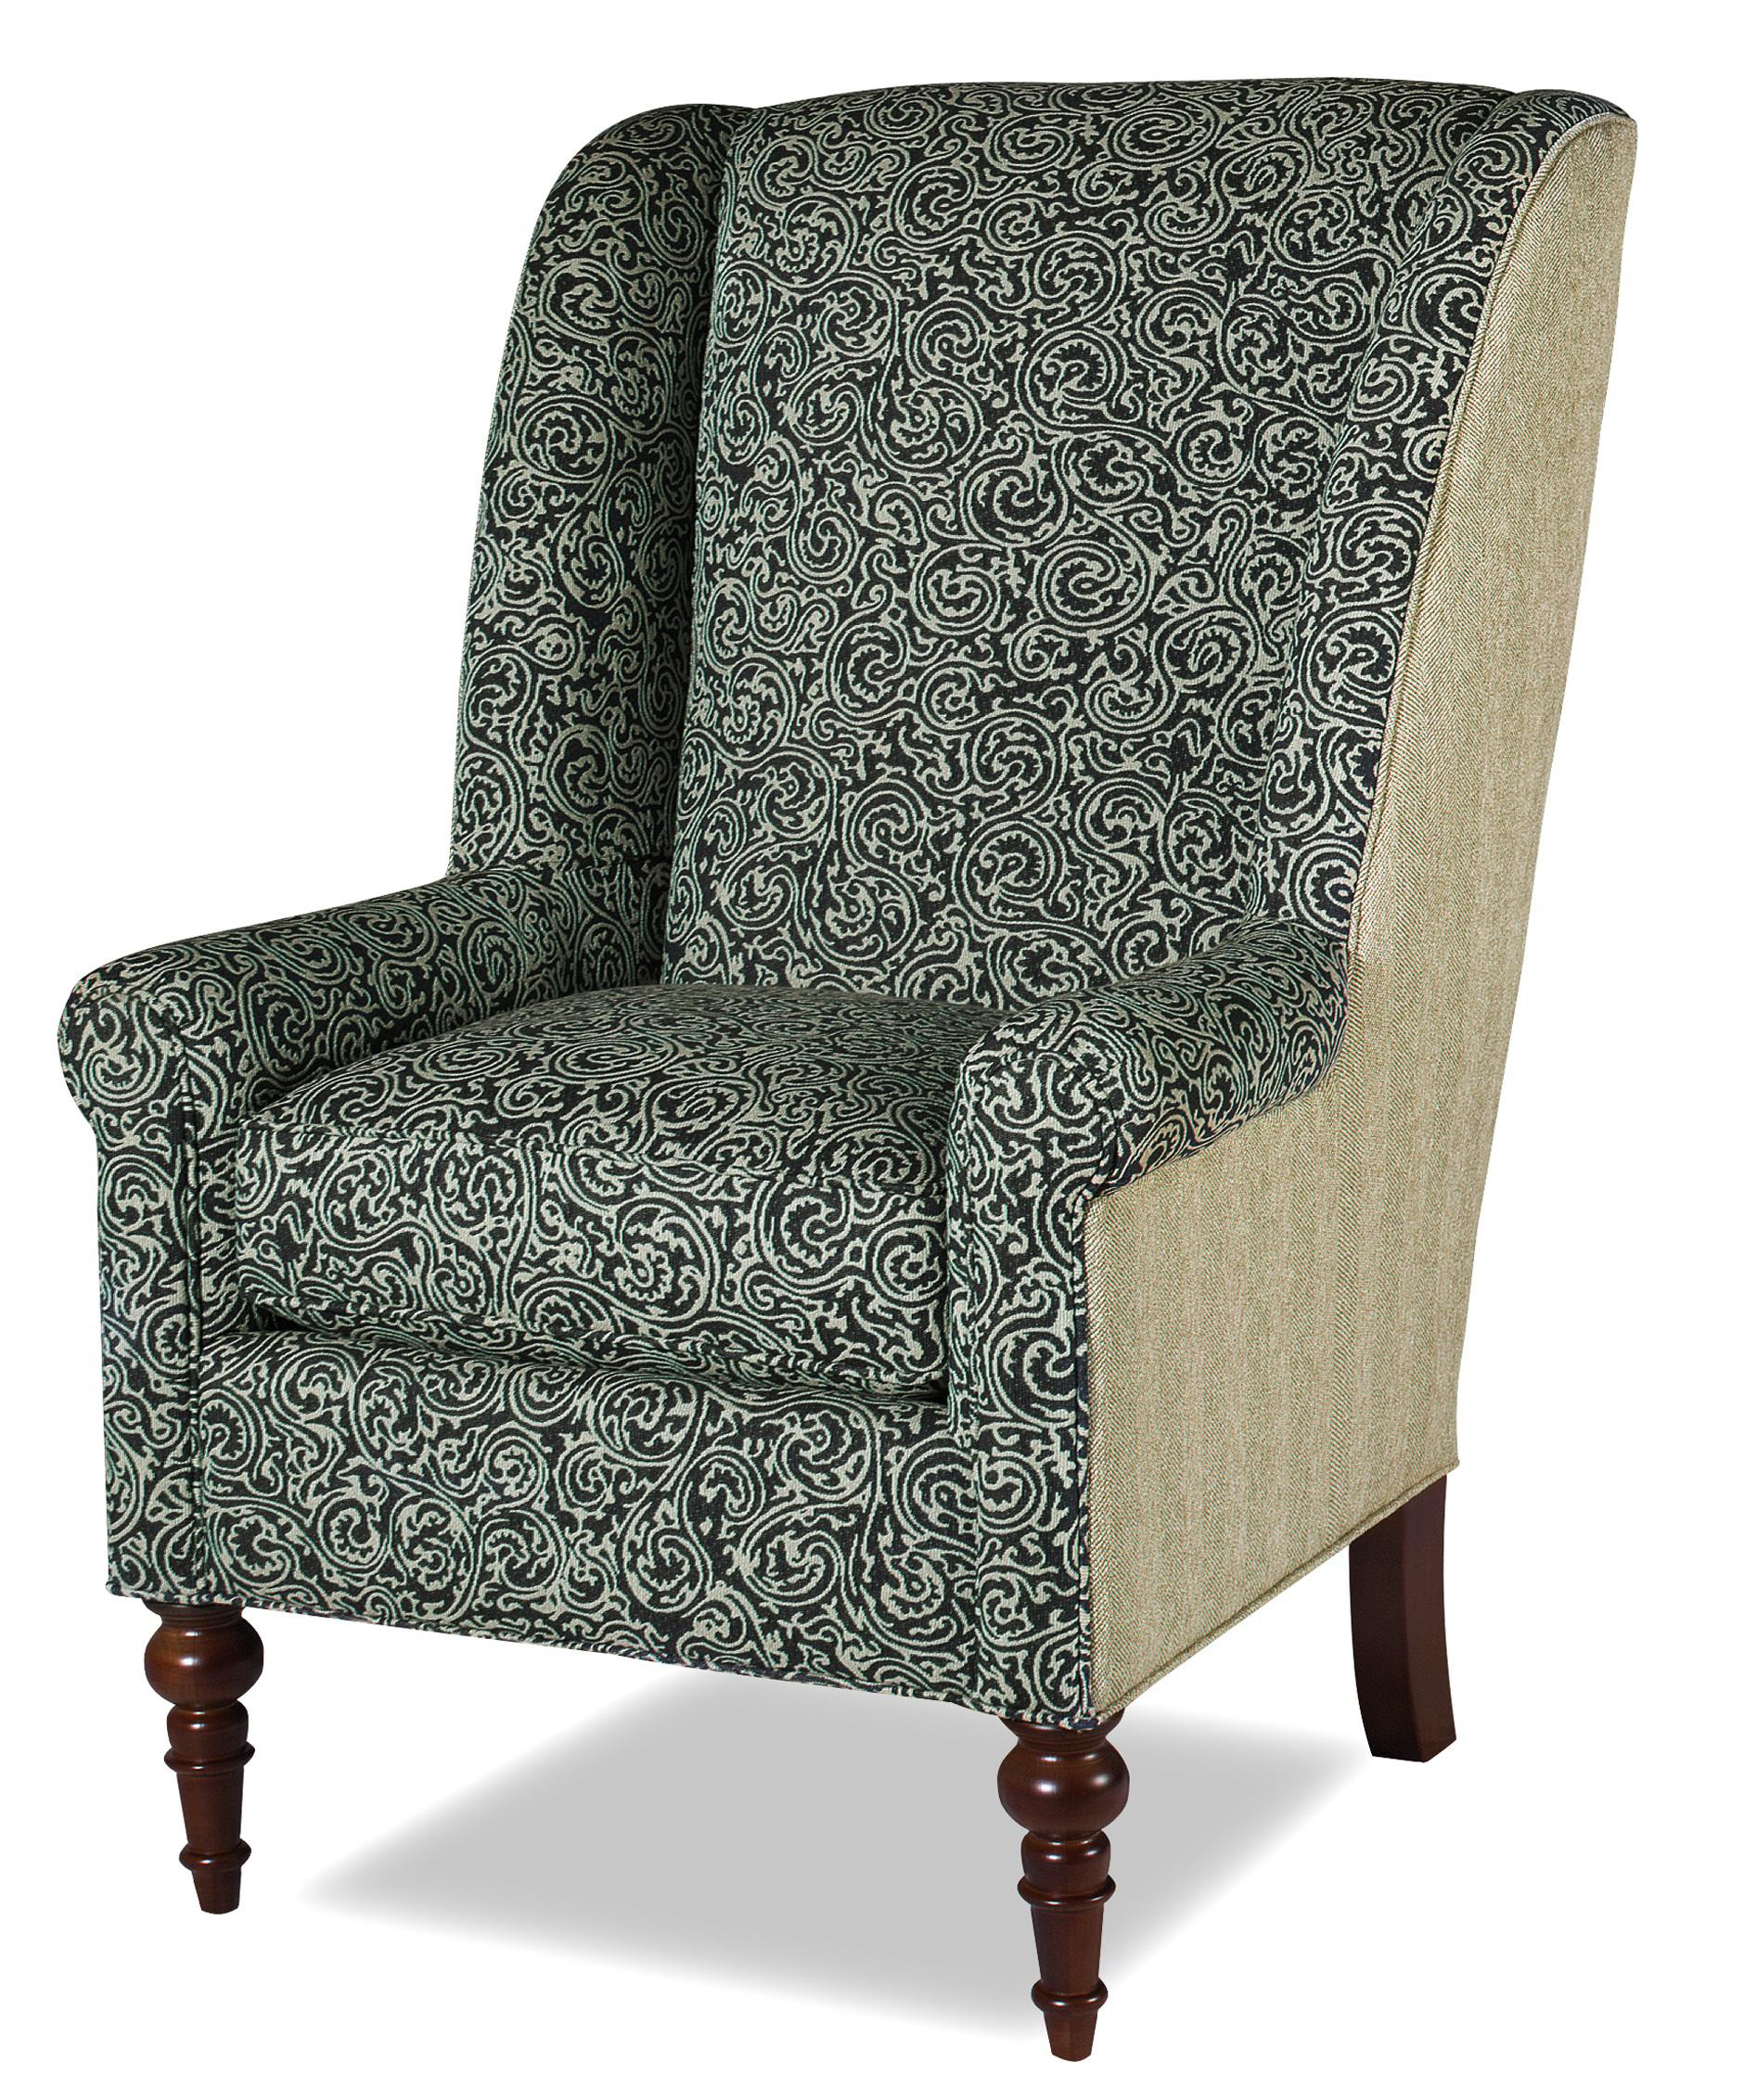 Accent Chairs Modified Wing Back Chair by Craftmaster at Baer's Furniture